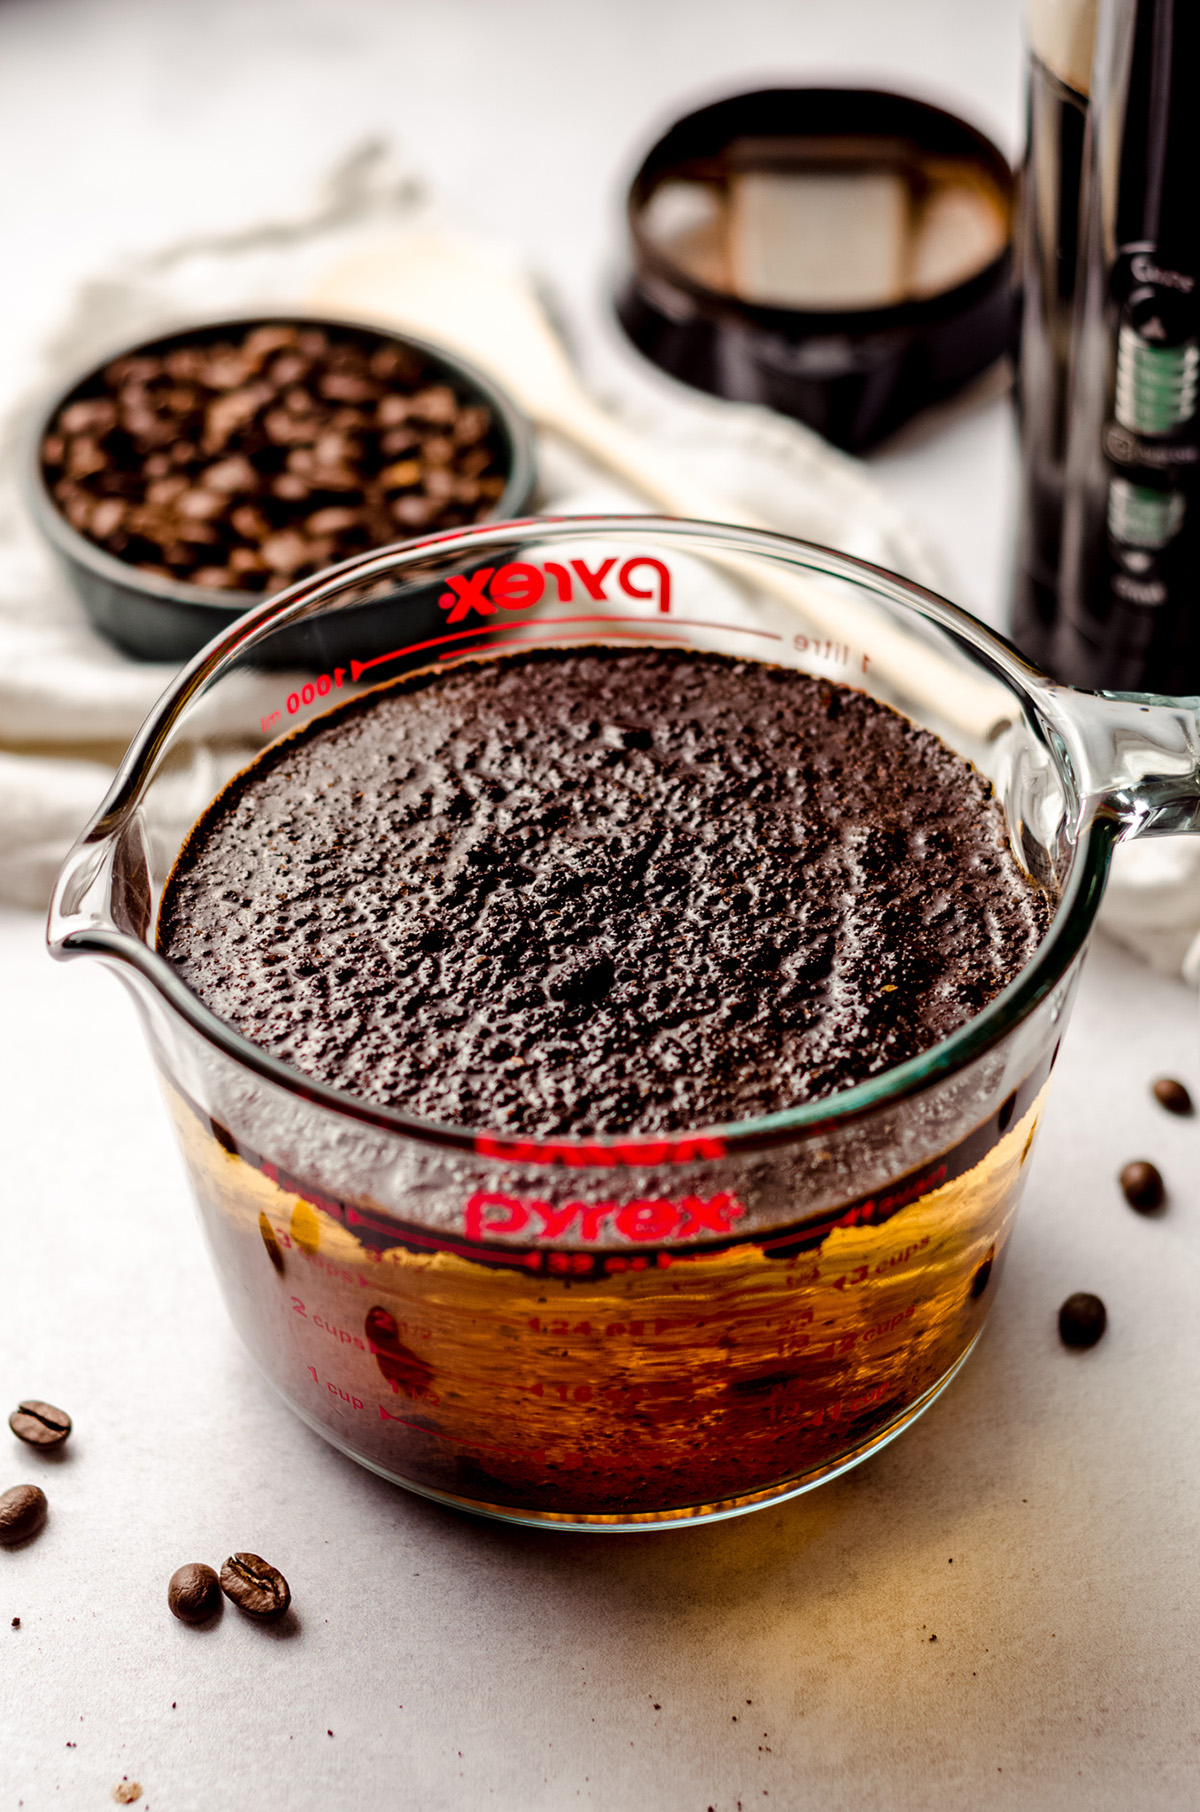 coffee grounds soaking in water in a glass measuring cup